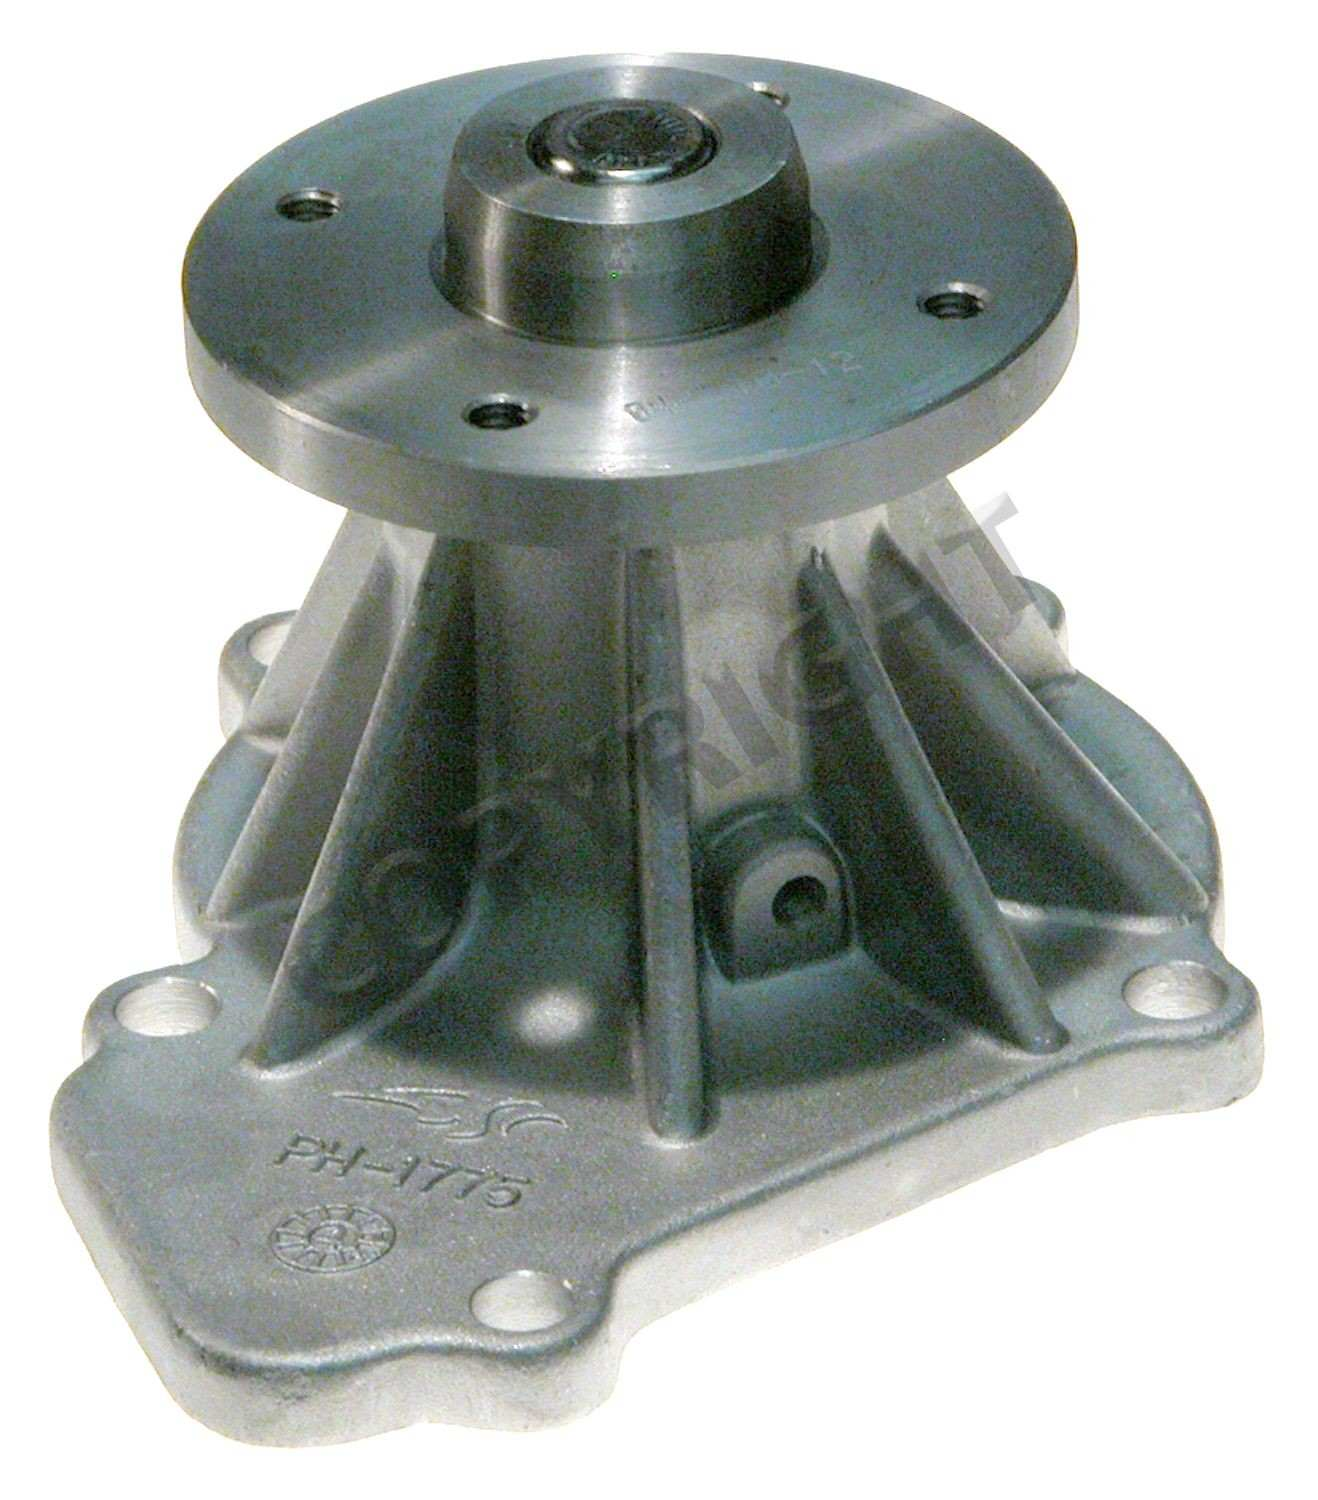 MAGNETI MARELLI OFFERED BY MOPAR - Engine Water Pump - MGM 1AMWP00002